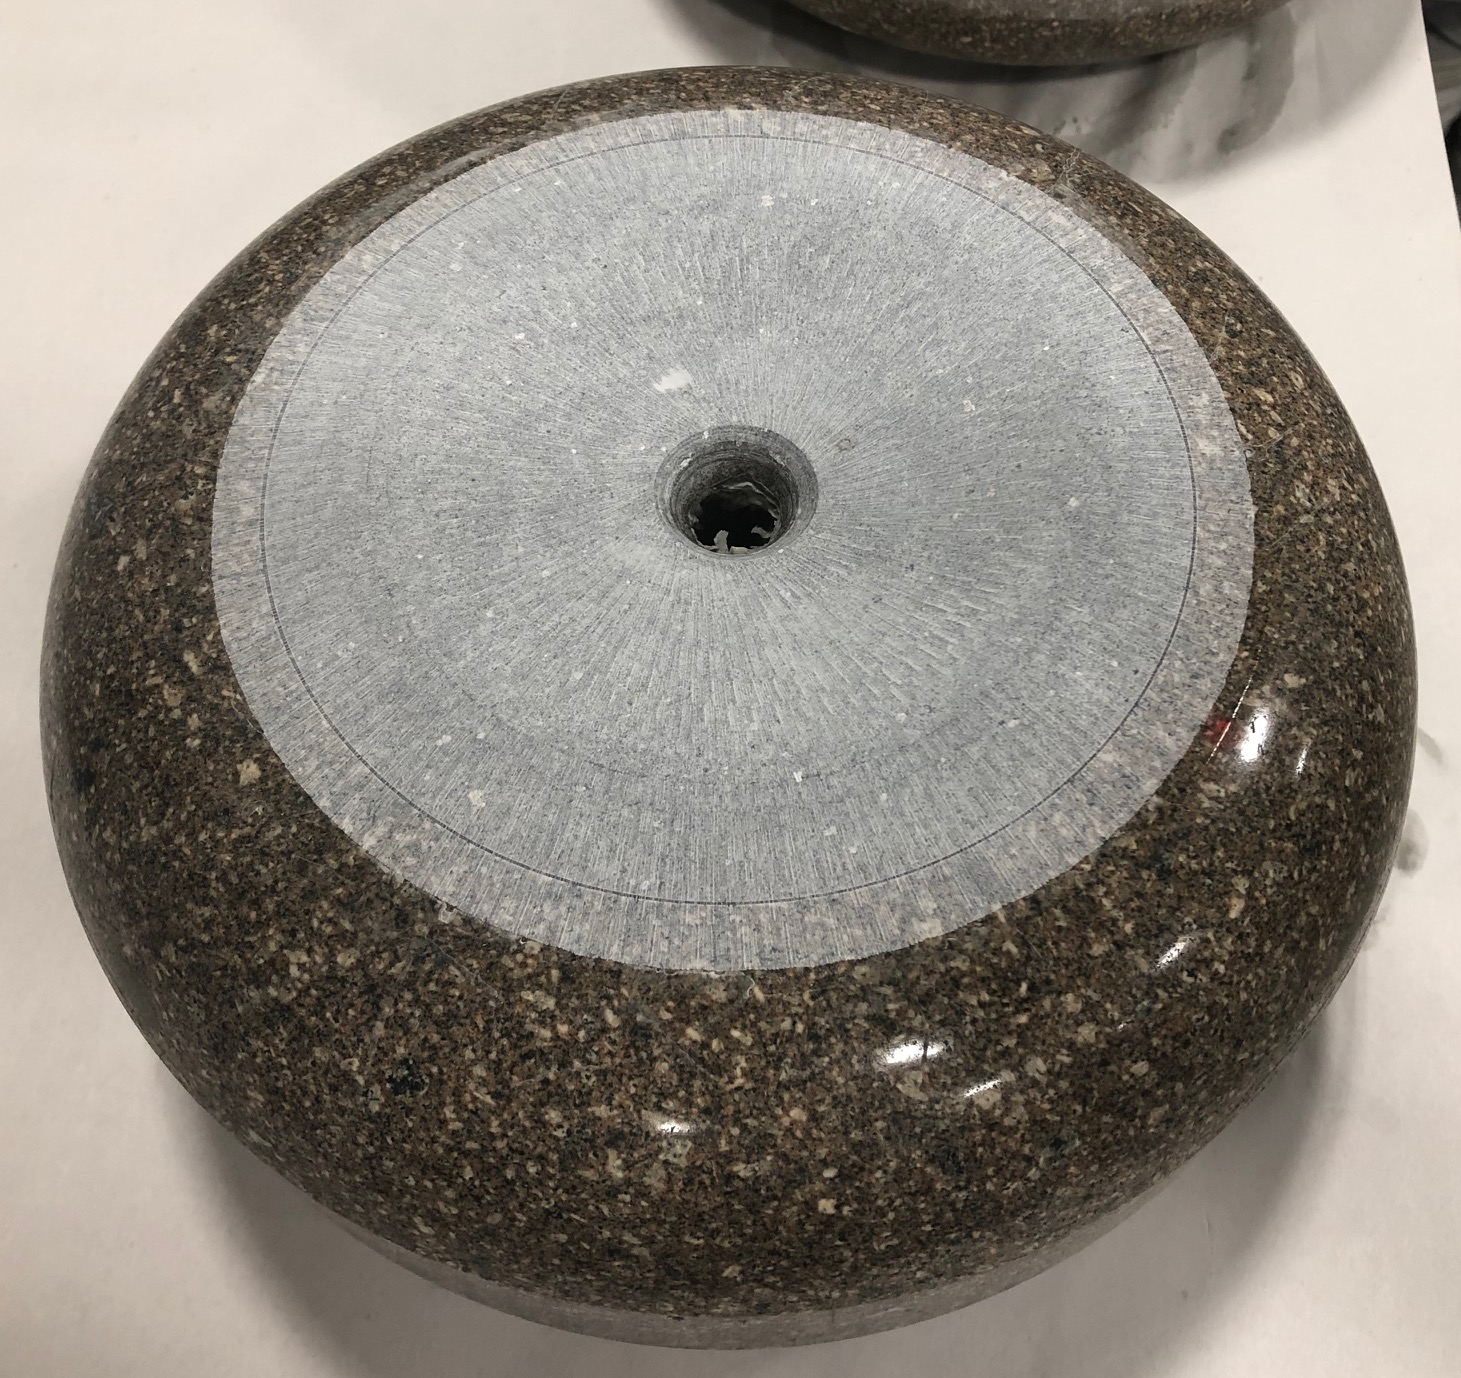 Recondition One Side Of Club S Existing Curling Stones